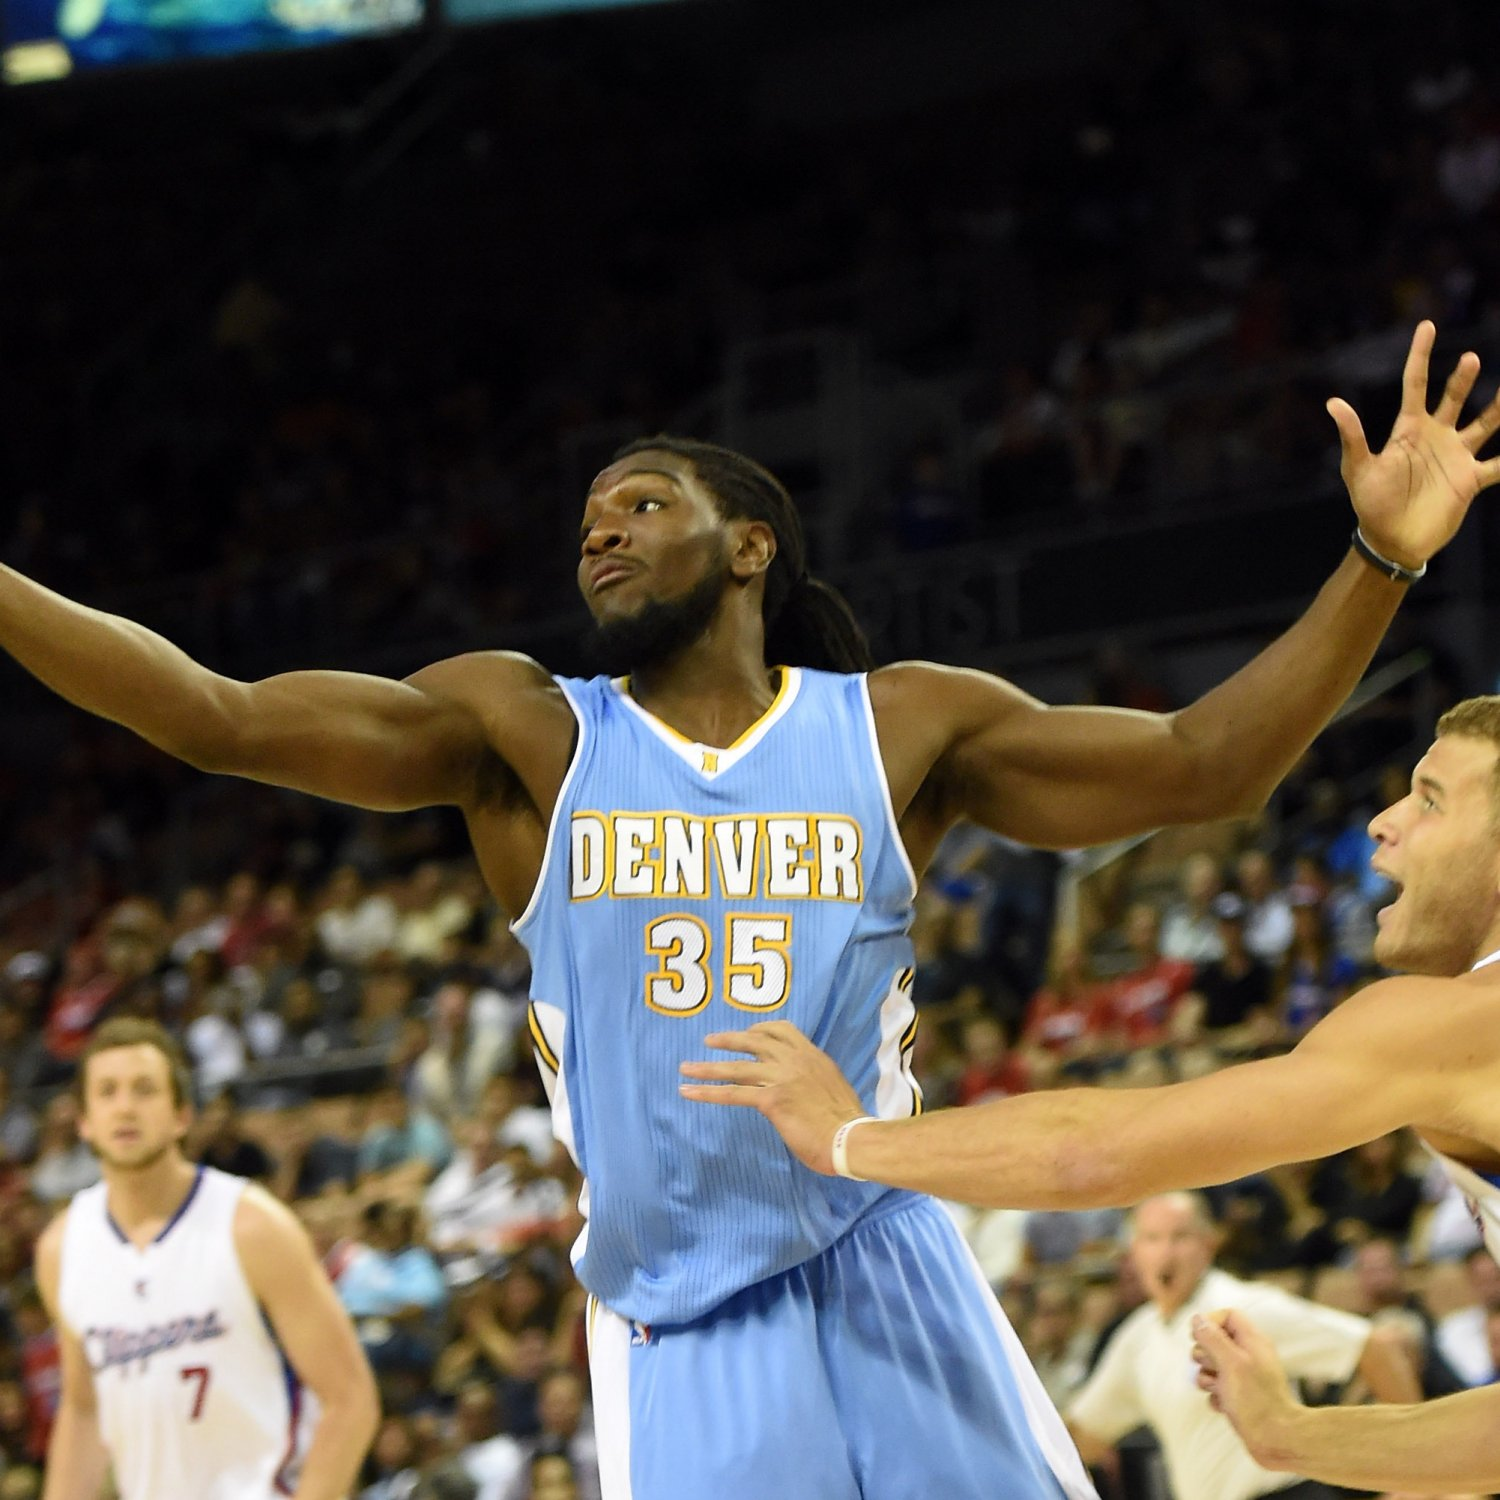 Denver Nuggets Vs. Los Angeles Clippers 10/18/14: Video